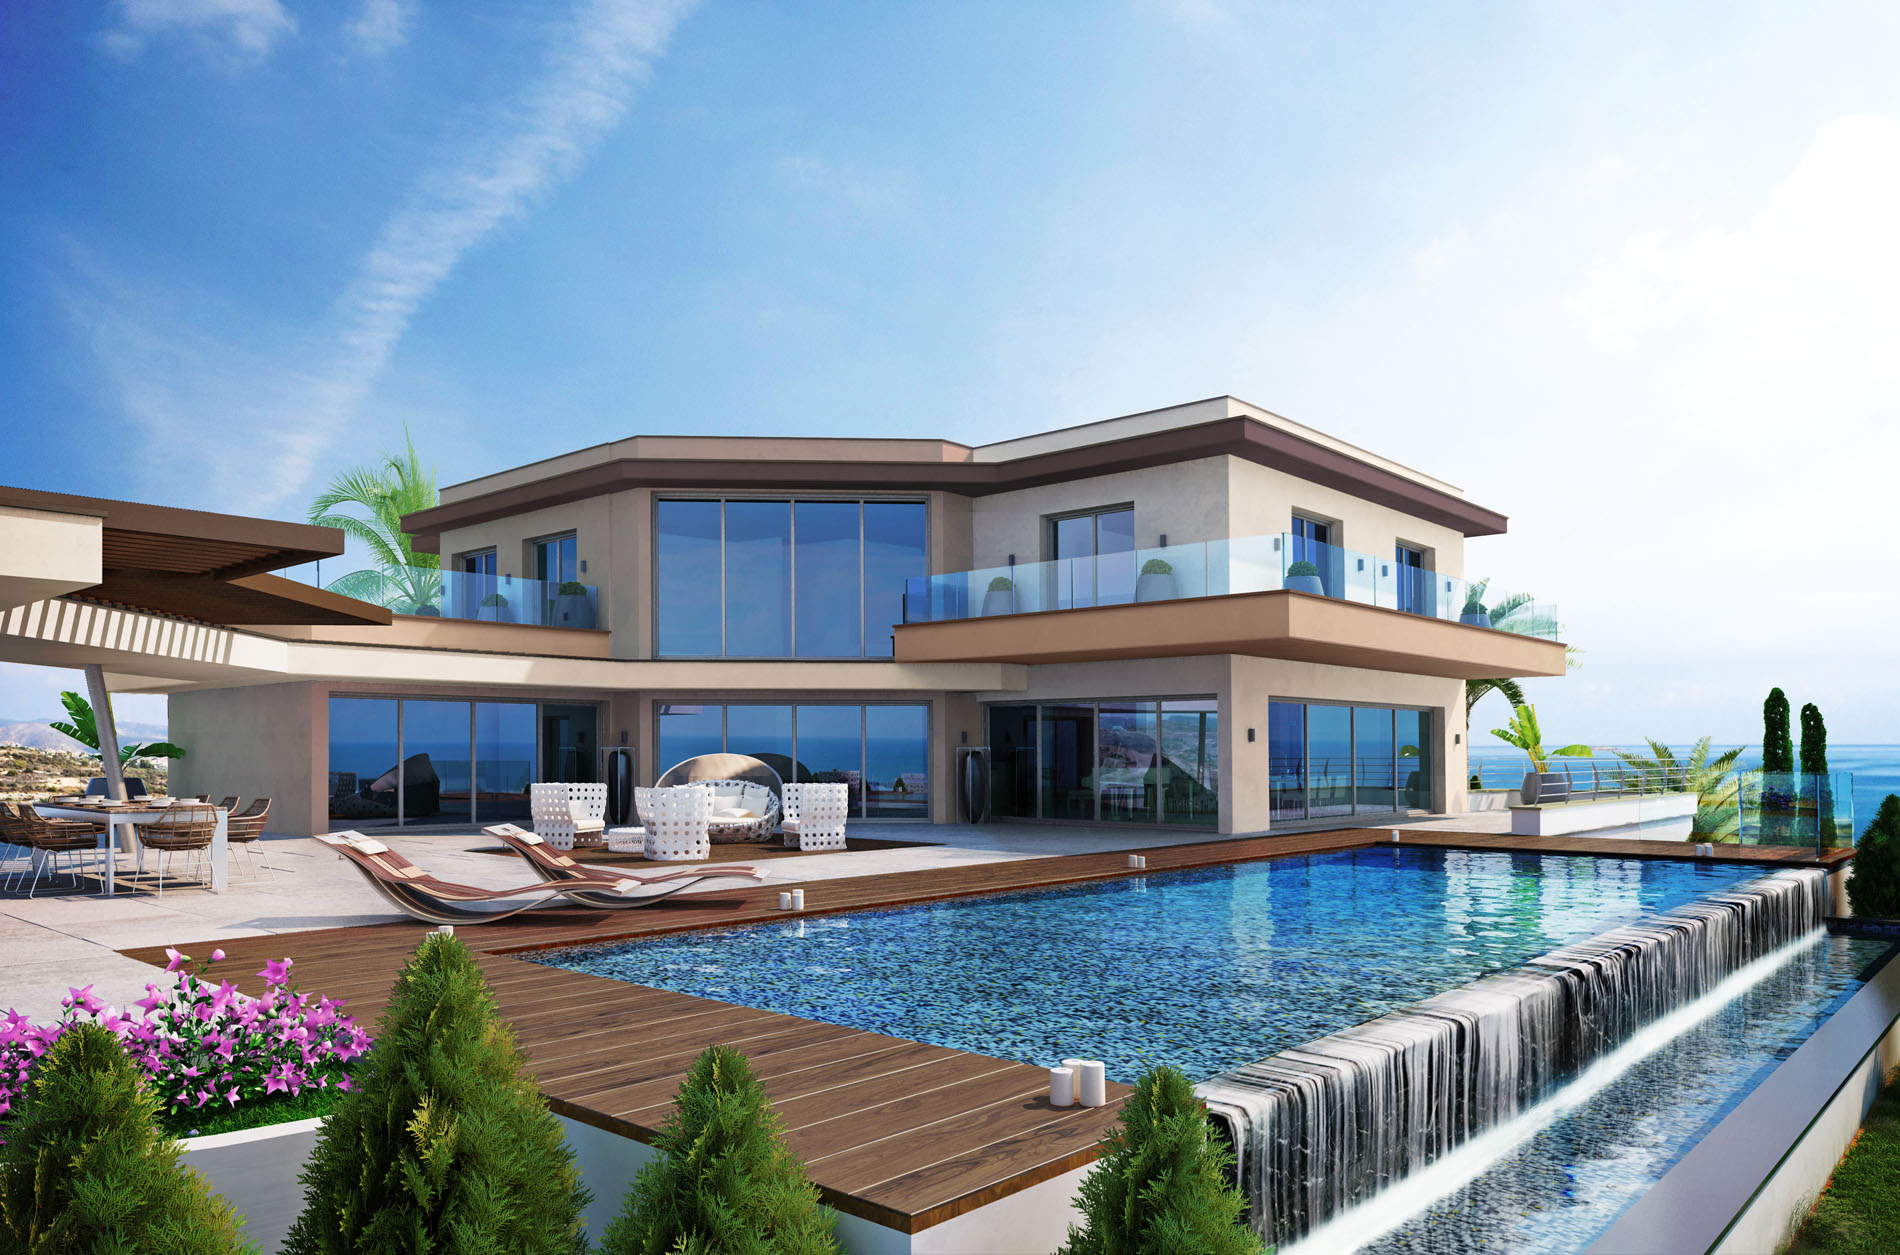 5 Reasons to Buy Property in Cyprus